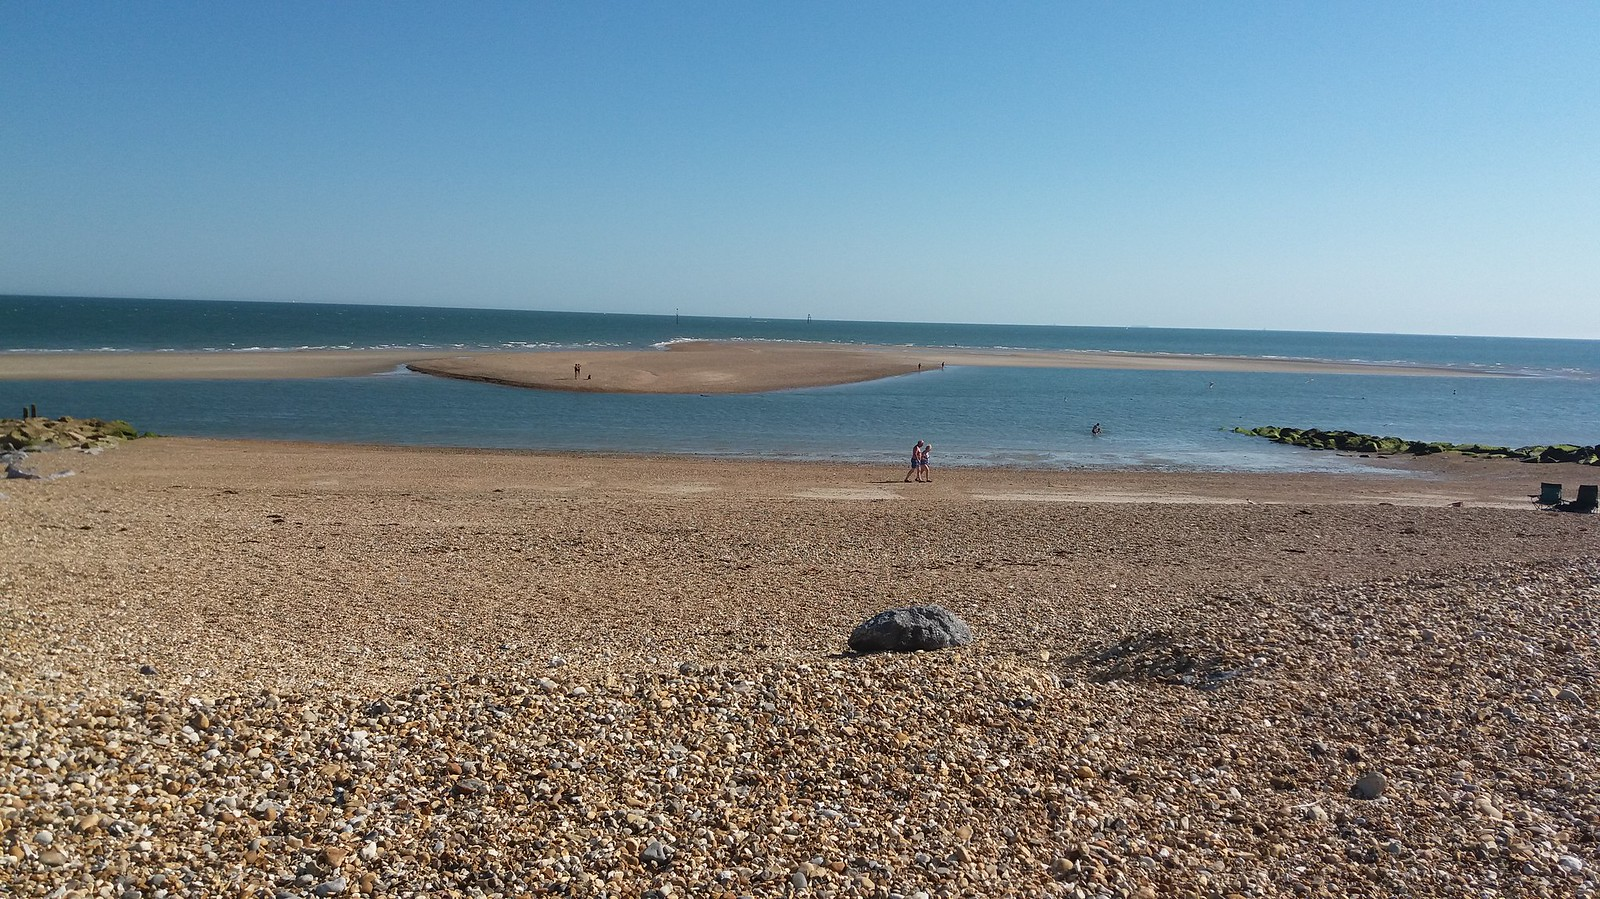 20160719_170046 Eastoke Point (Hayling Island) sandbar